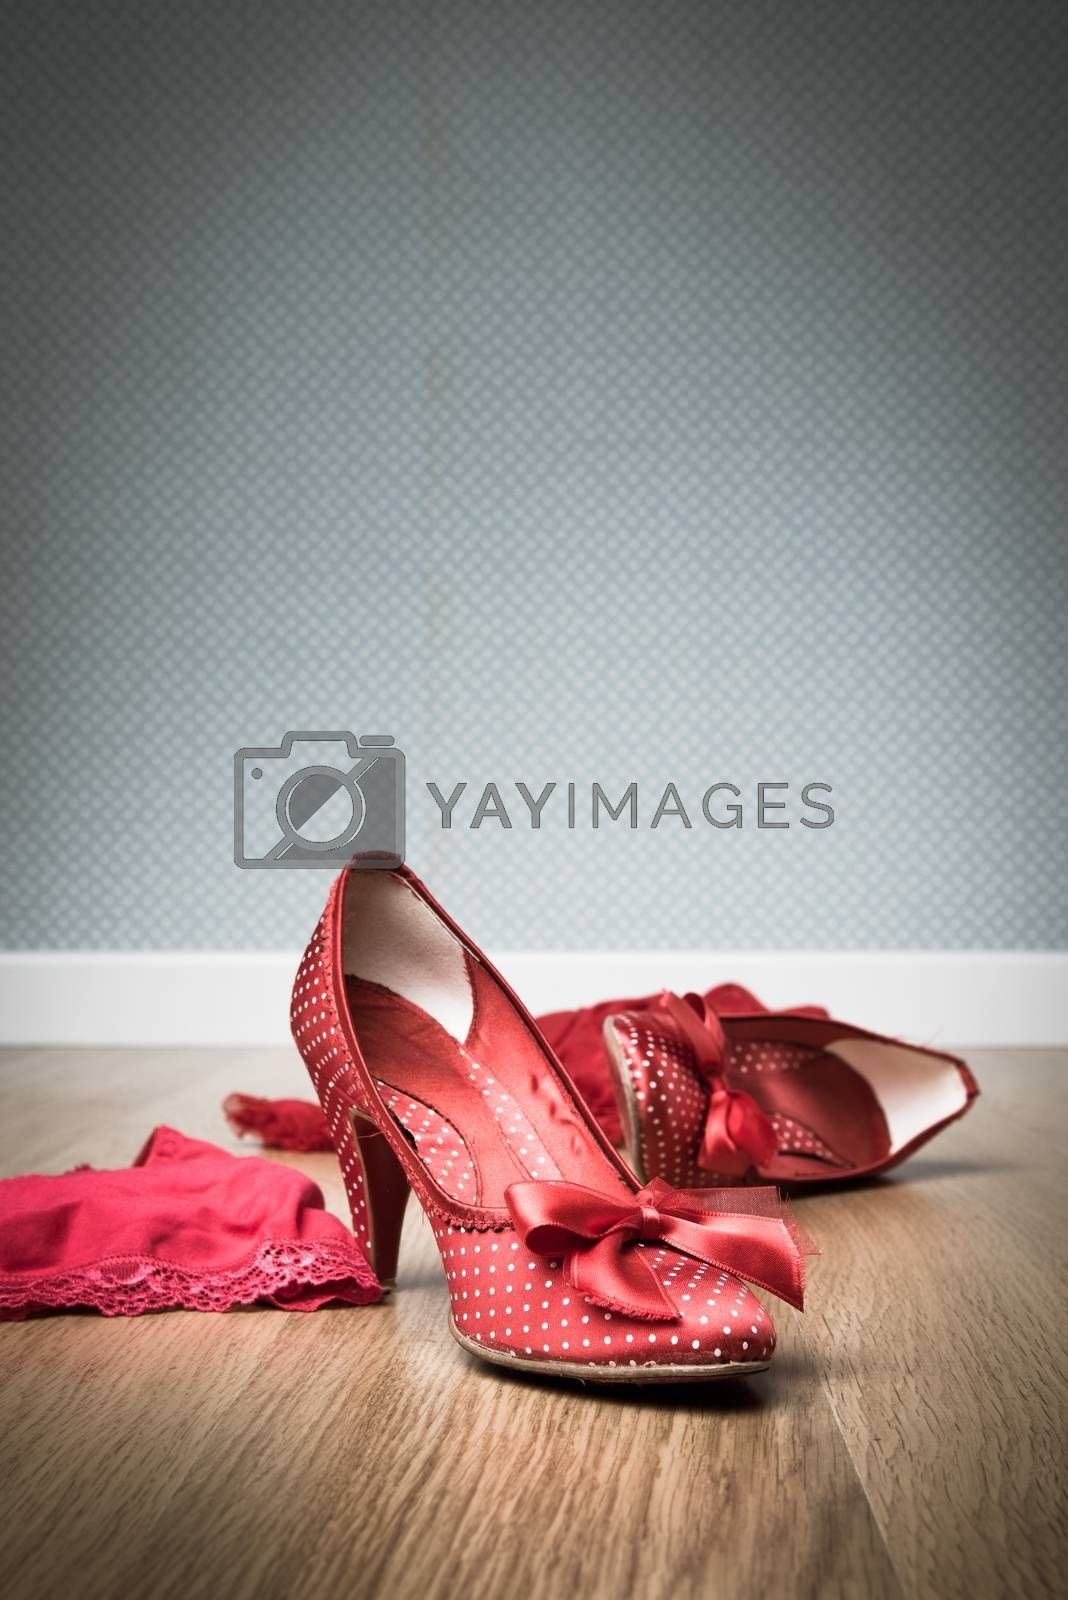 Female red shoes and lingerie on floor, sensuality and seduction concept.